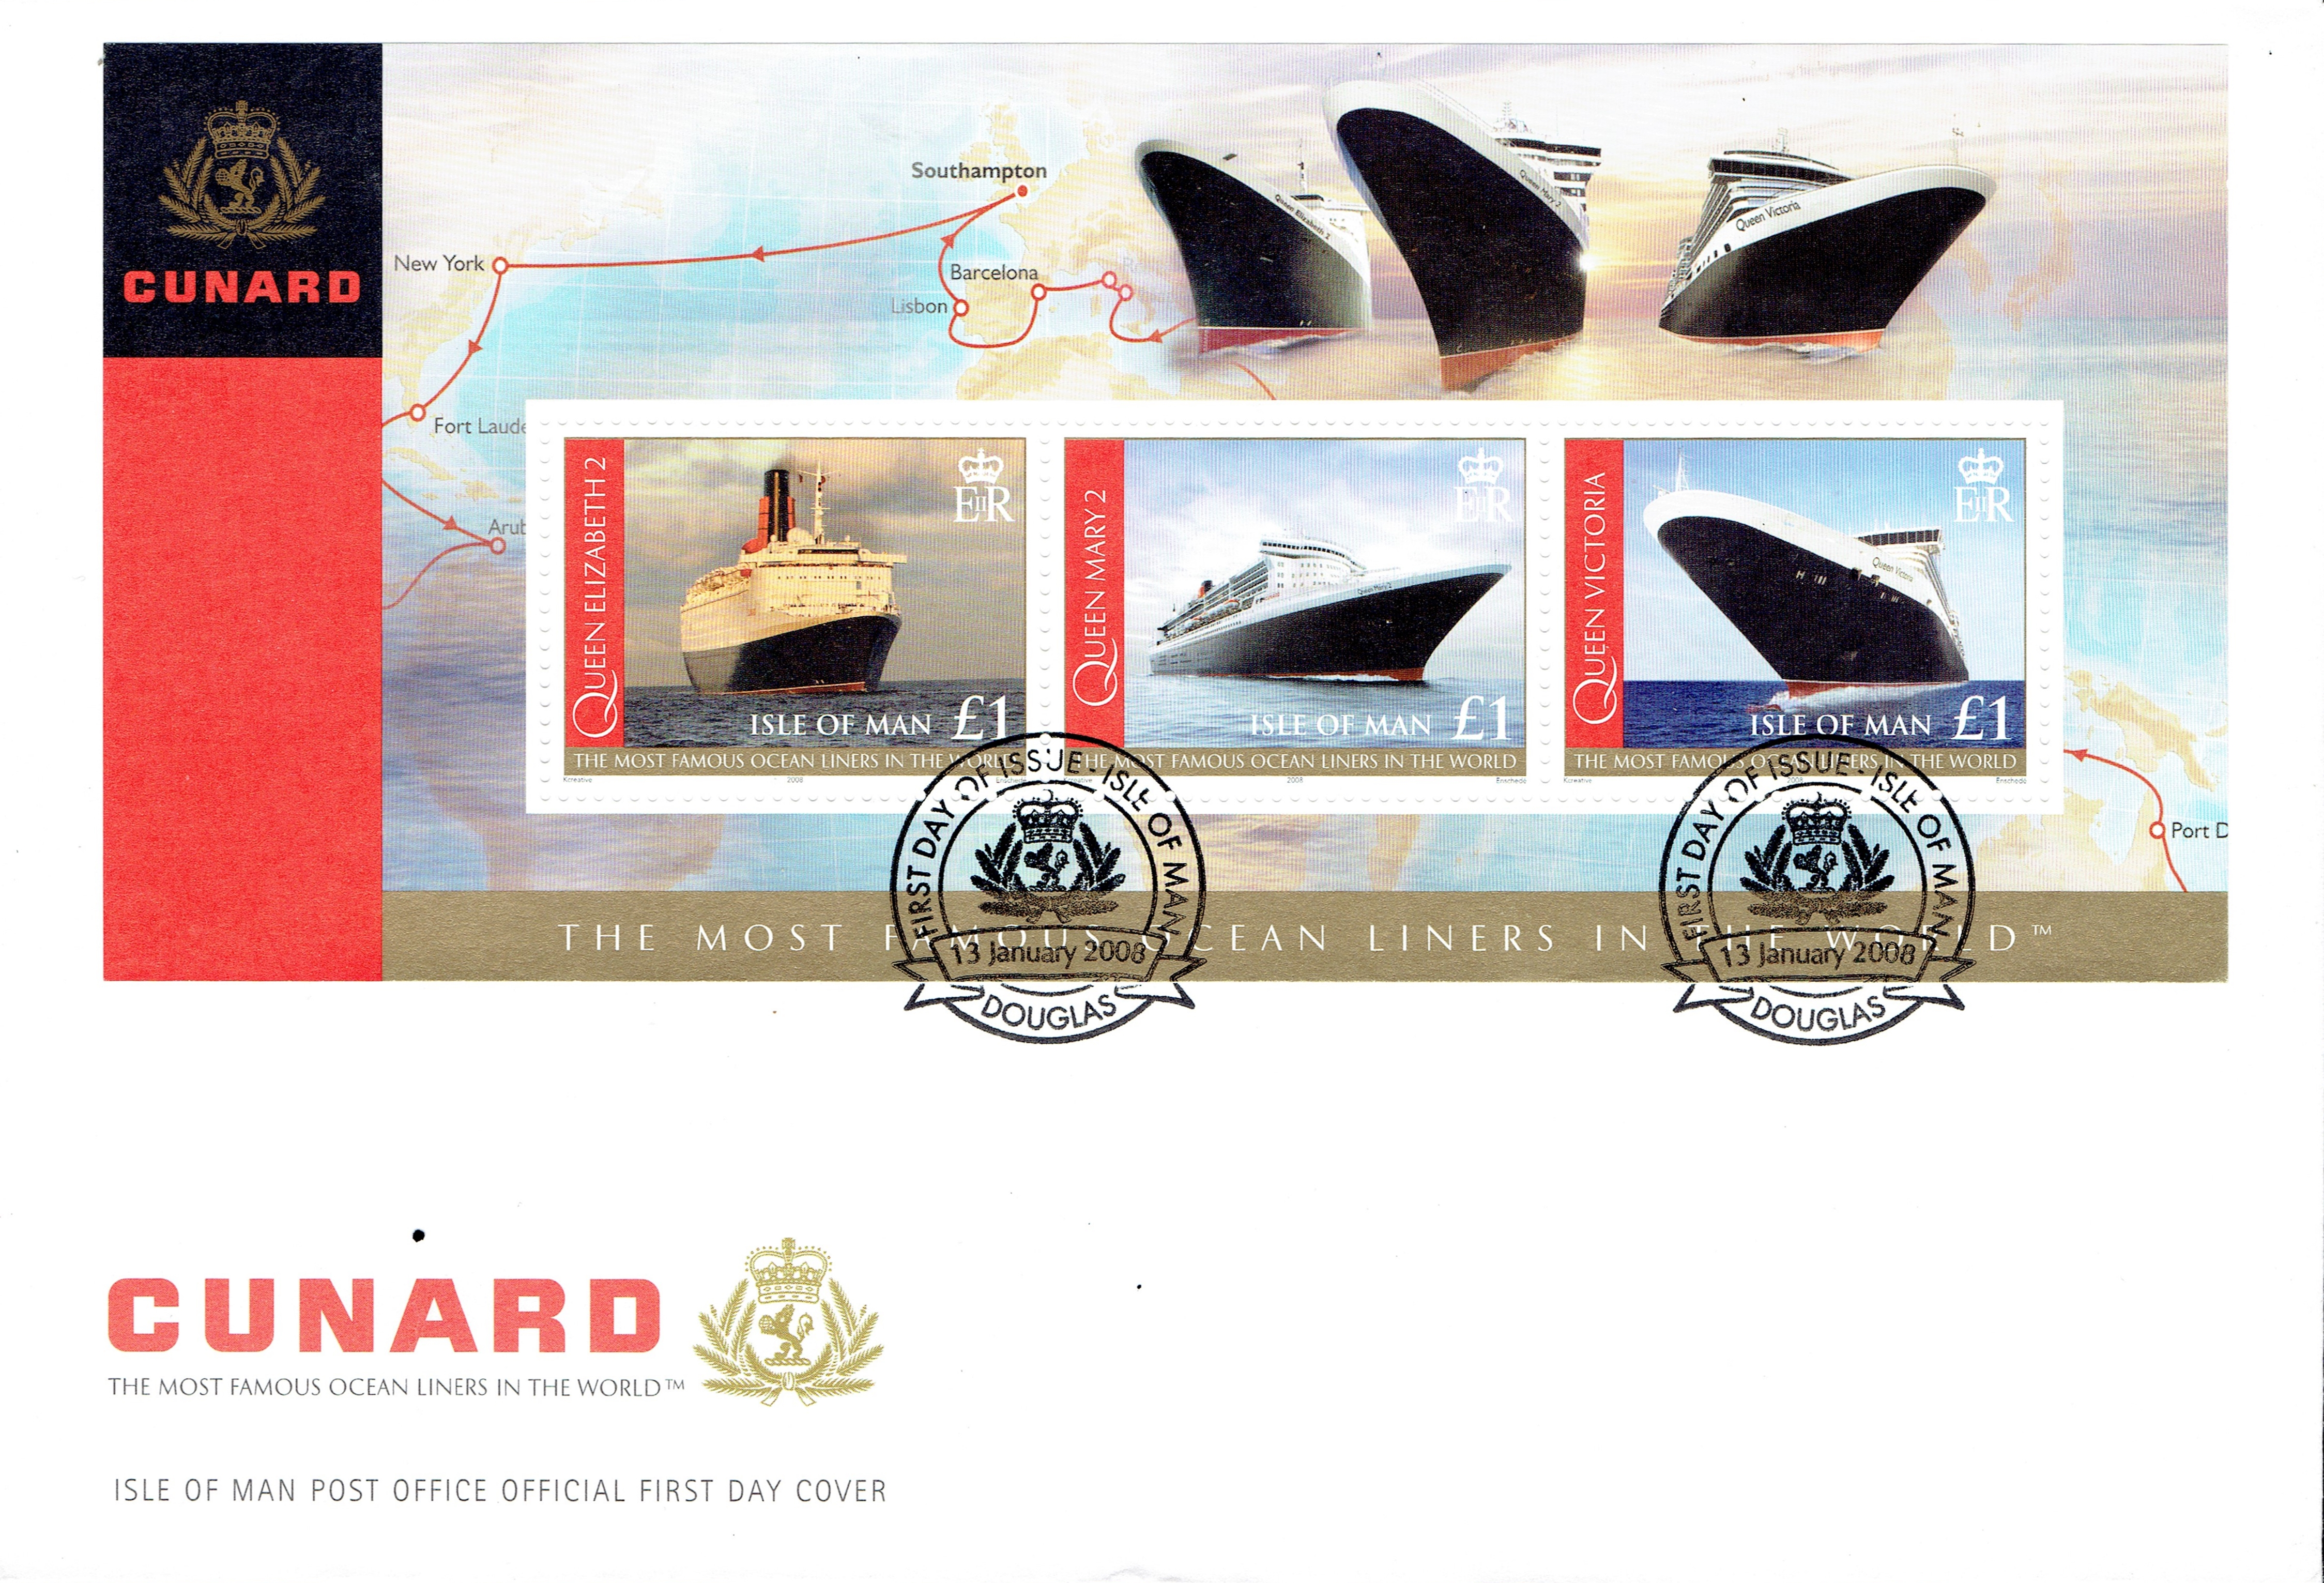 Isle of Man - Scott #1239 (2008): First Day Cover